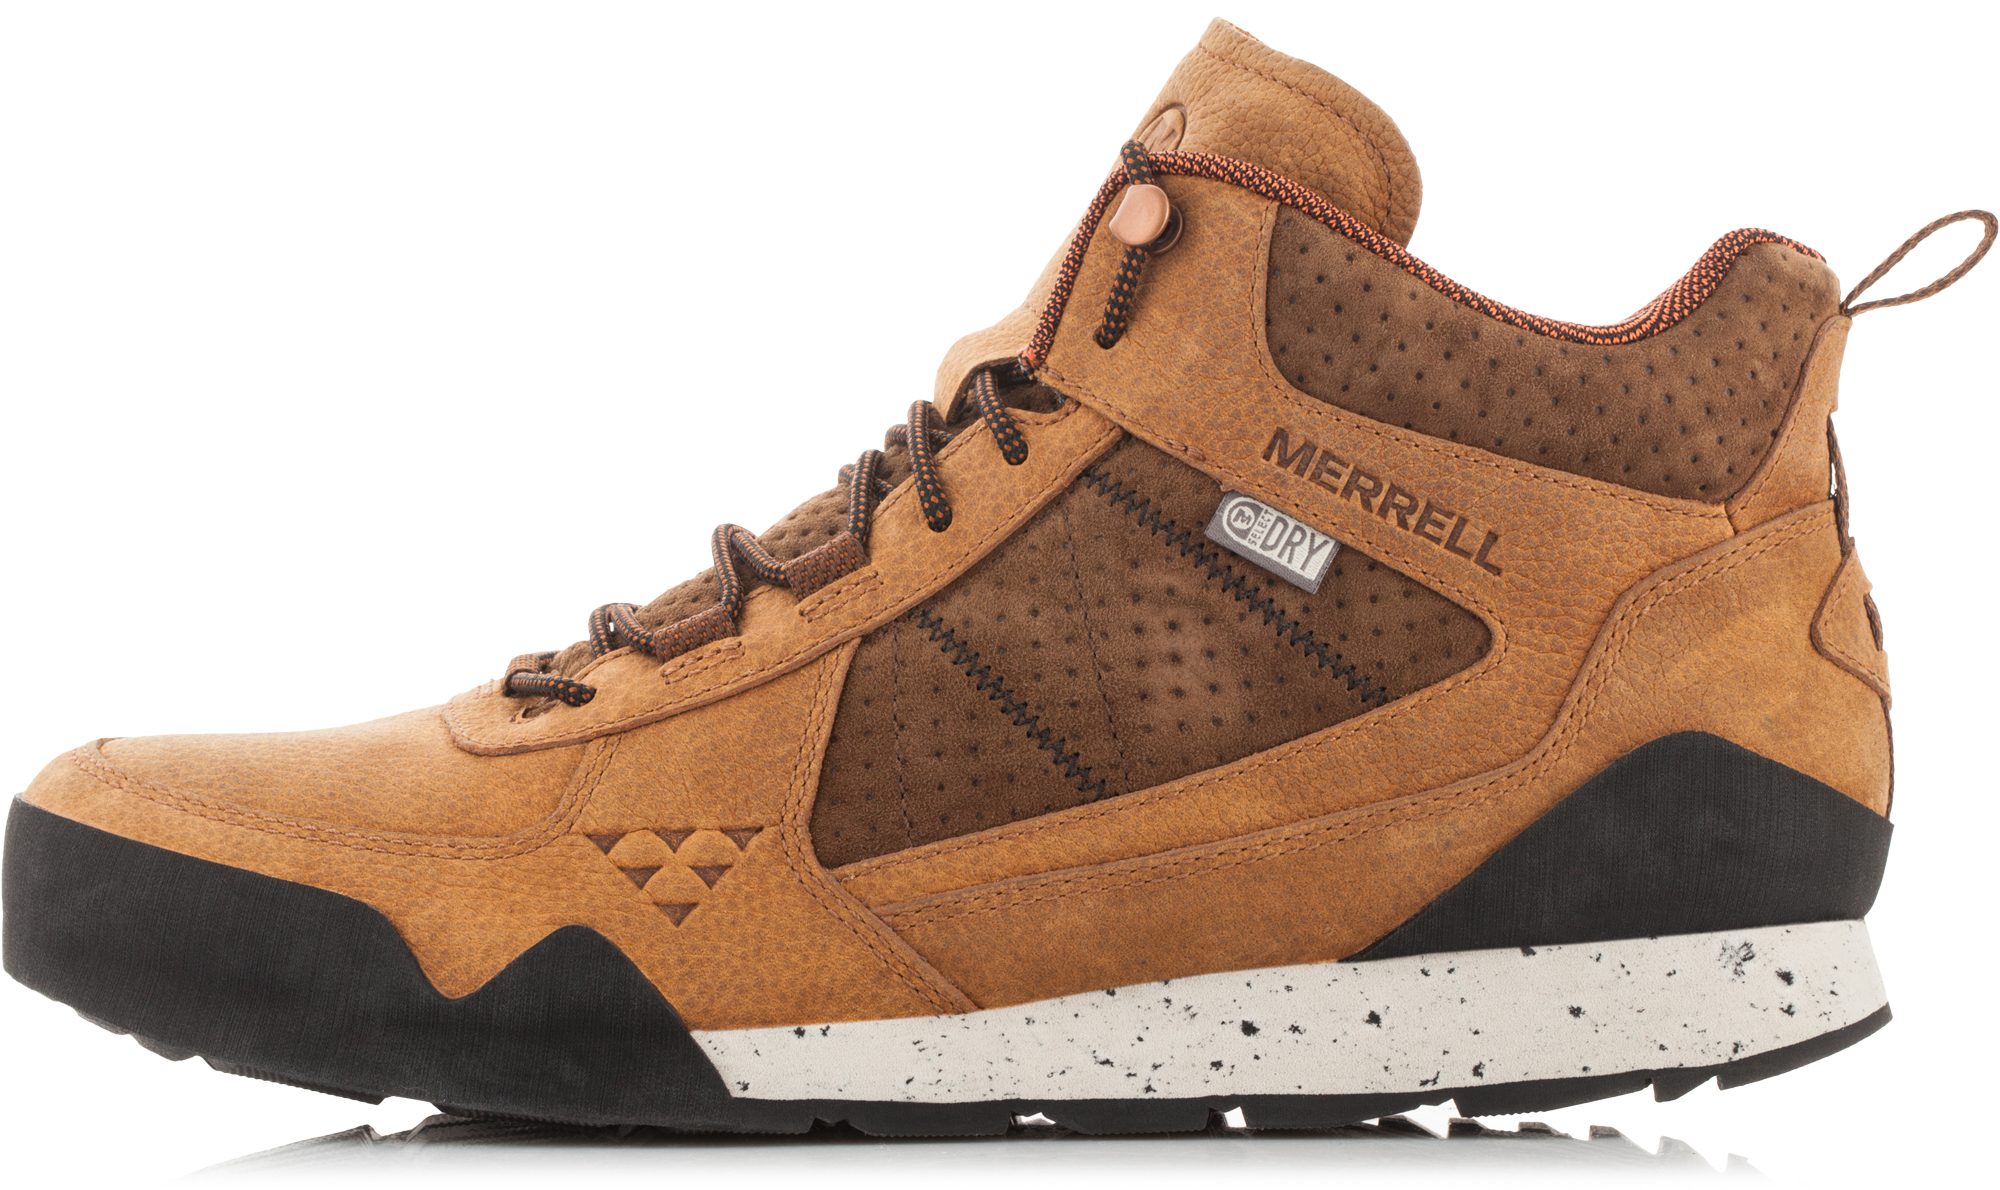 Merrell Ботинки мужские Merrell Burnt Rock Mid